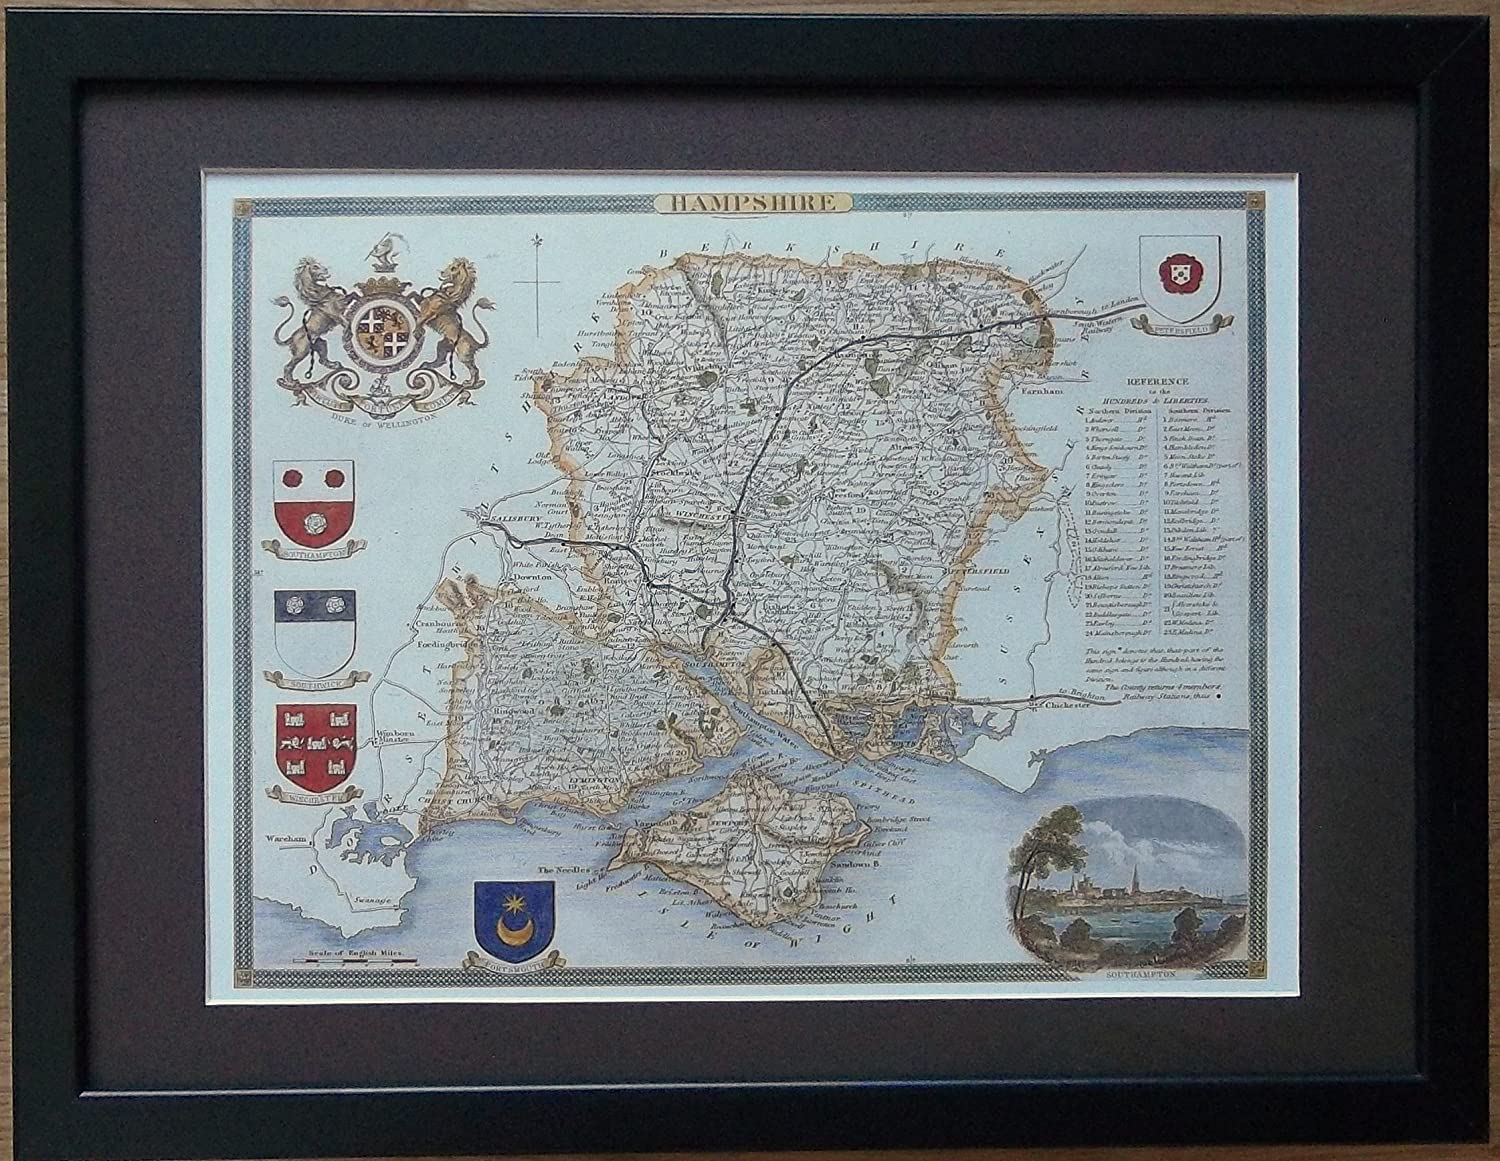 Framed and Mounted Old County Map - 12'' x 16'' frame, Old Hampshire Map framed print